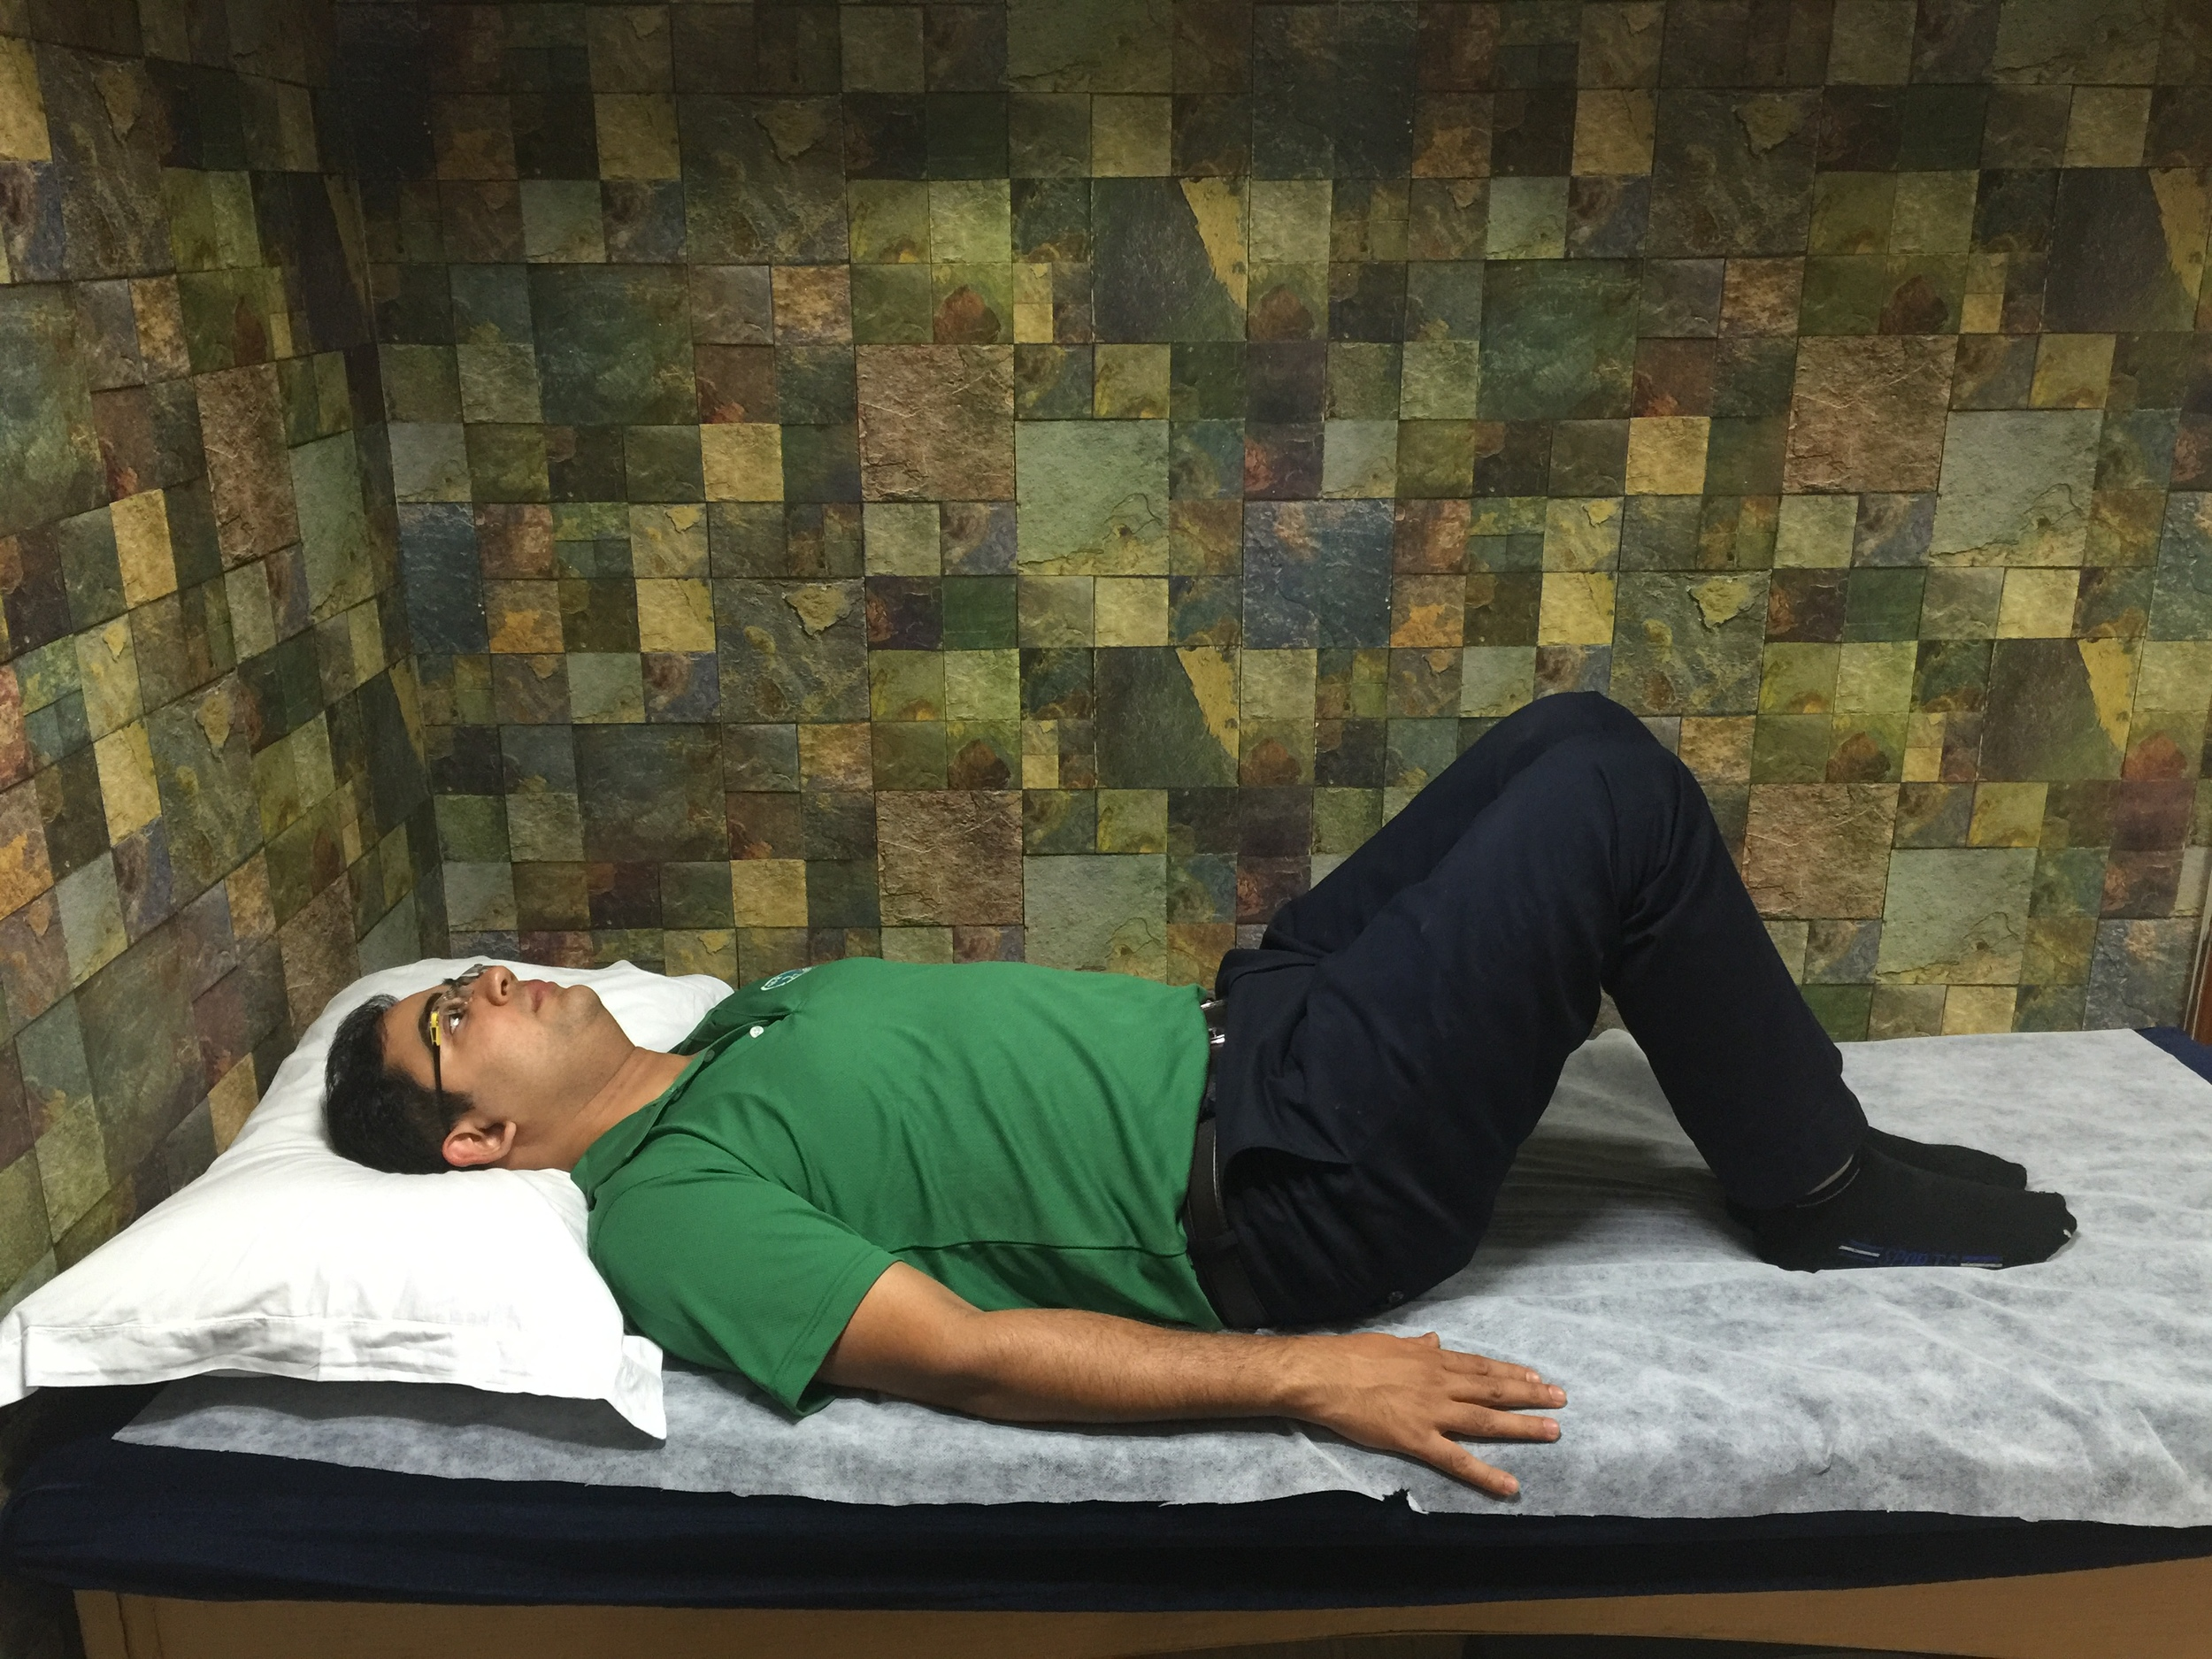 Lie down on your back with bent knees, with both arms flat on the floor; make sure your neck and shoulders are completely relaxed.